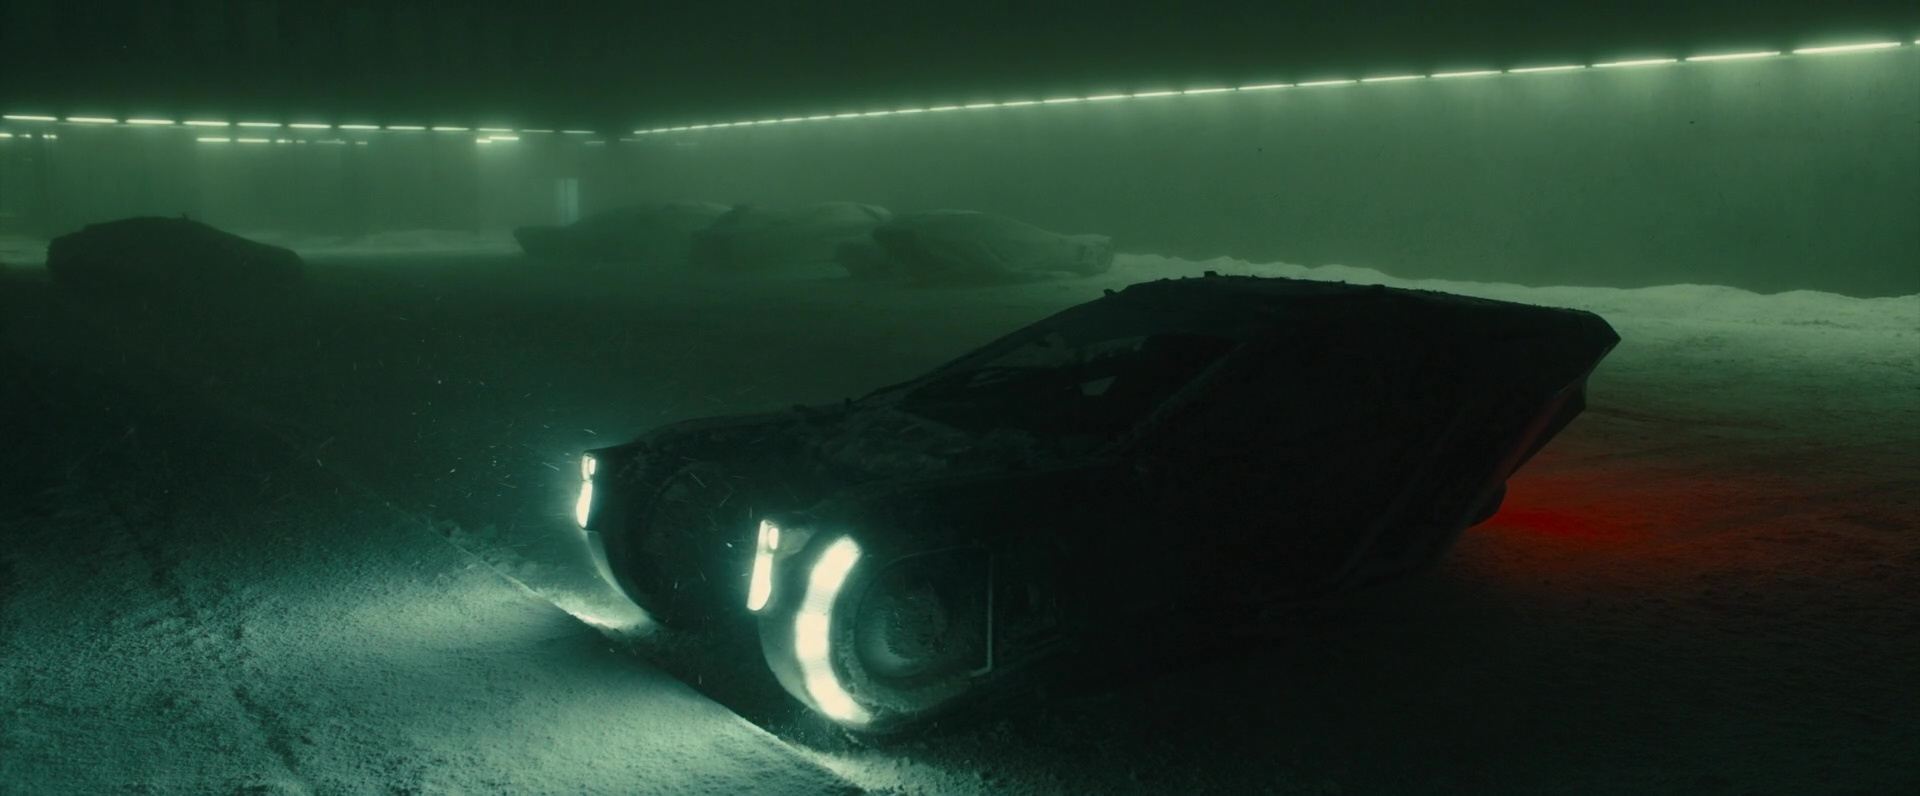 Peugeot Car Used By Ryan Gosling In Blade Runner 2049